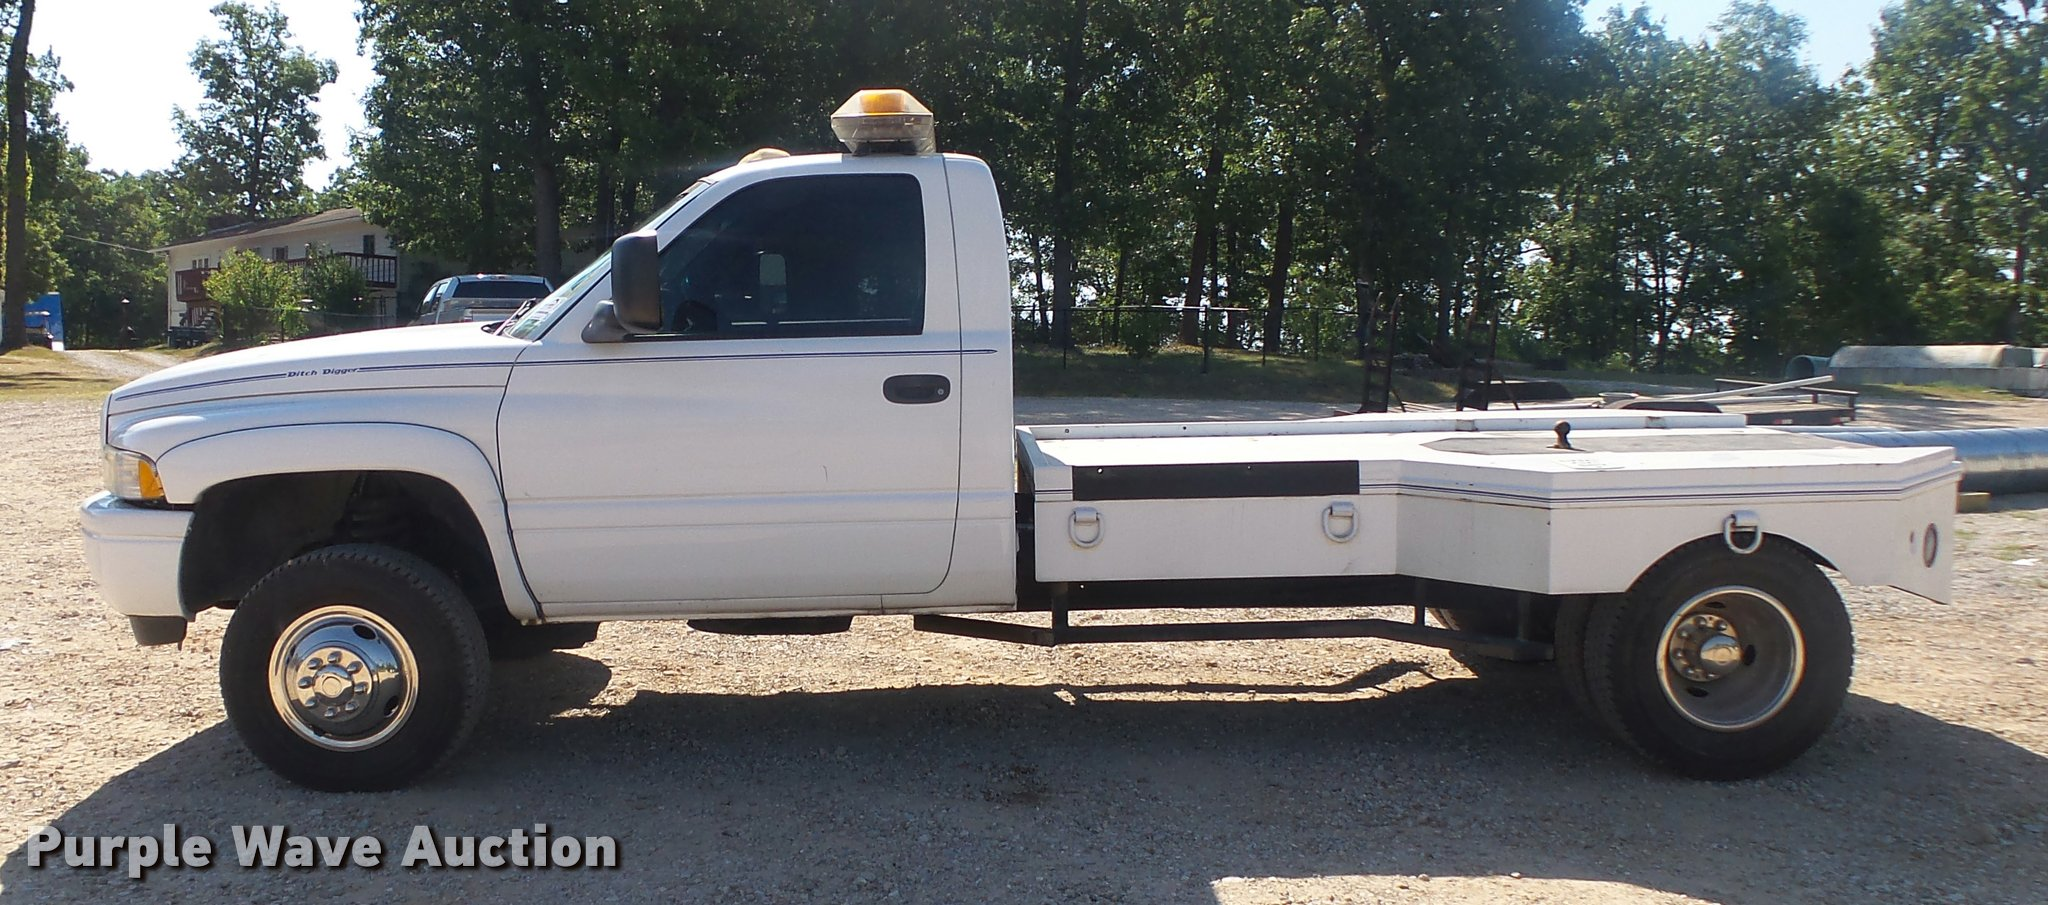 1998 Dodge Ram 3500 Flatbed Pickup Truck Item Db7451 Sol Wiring Full Size In New Window